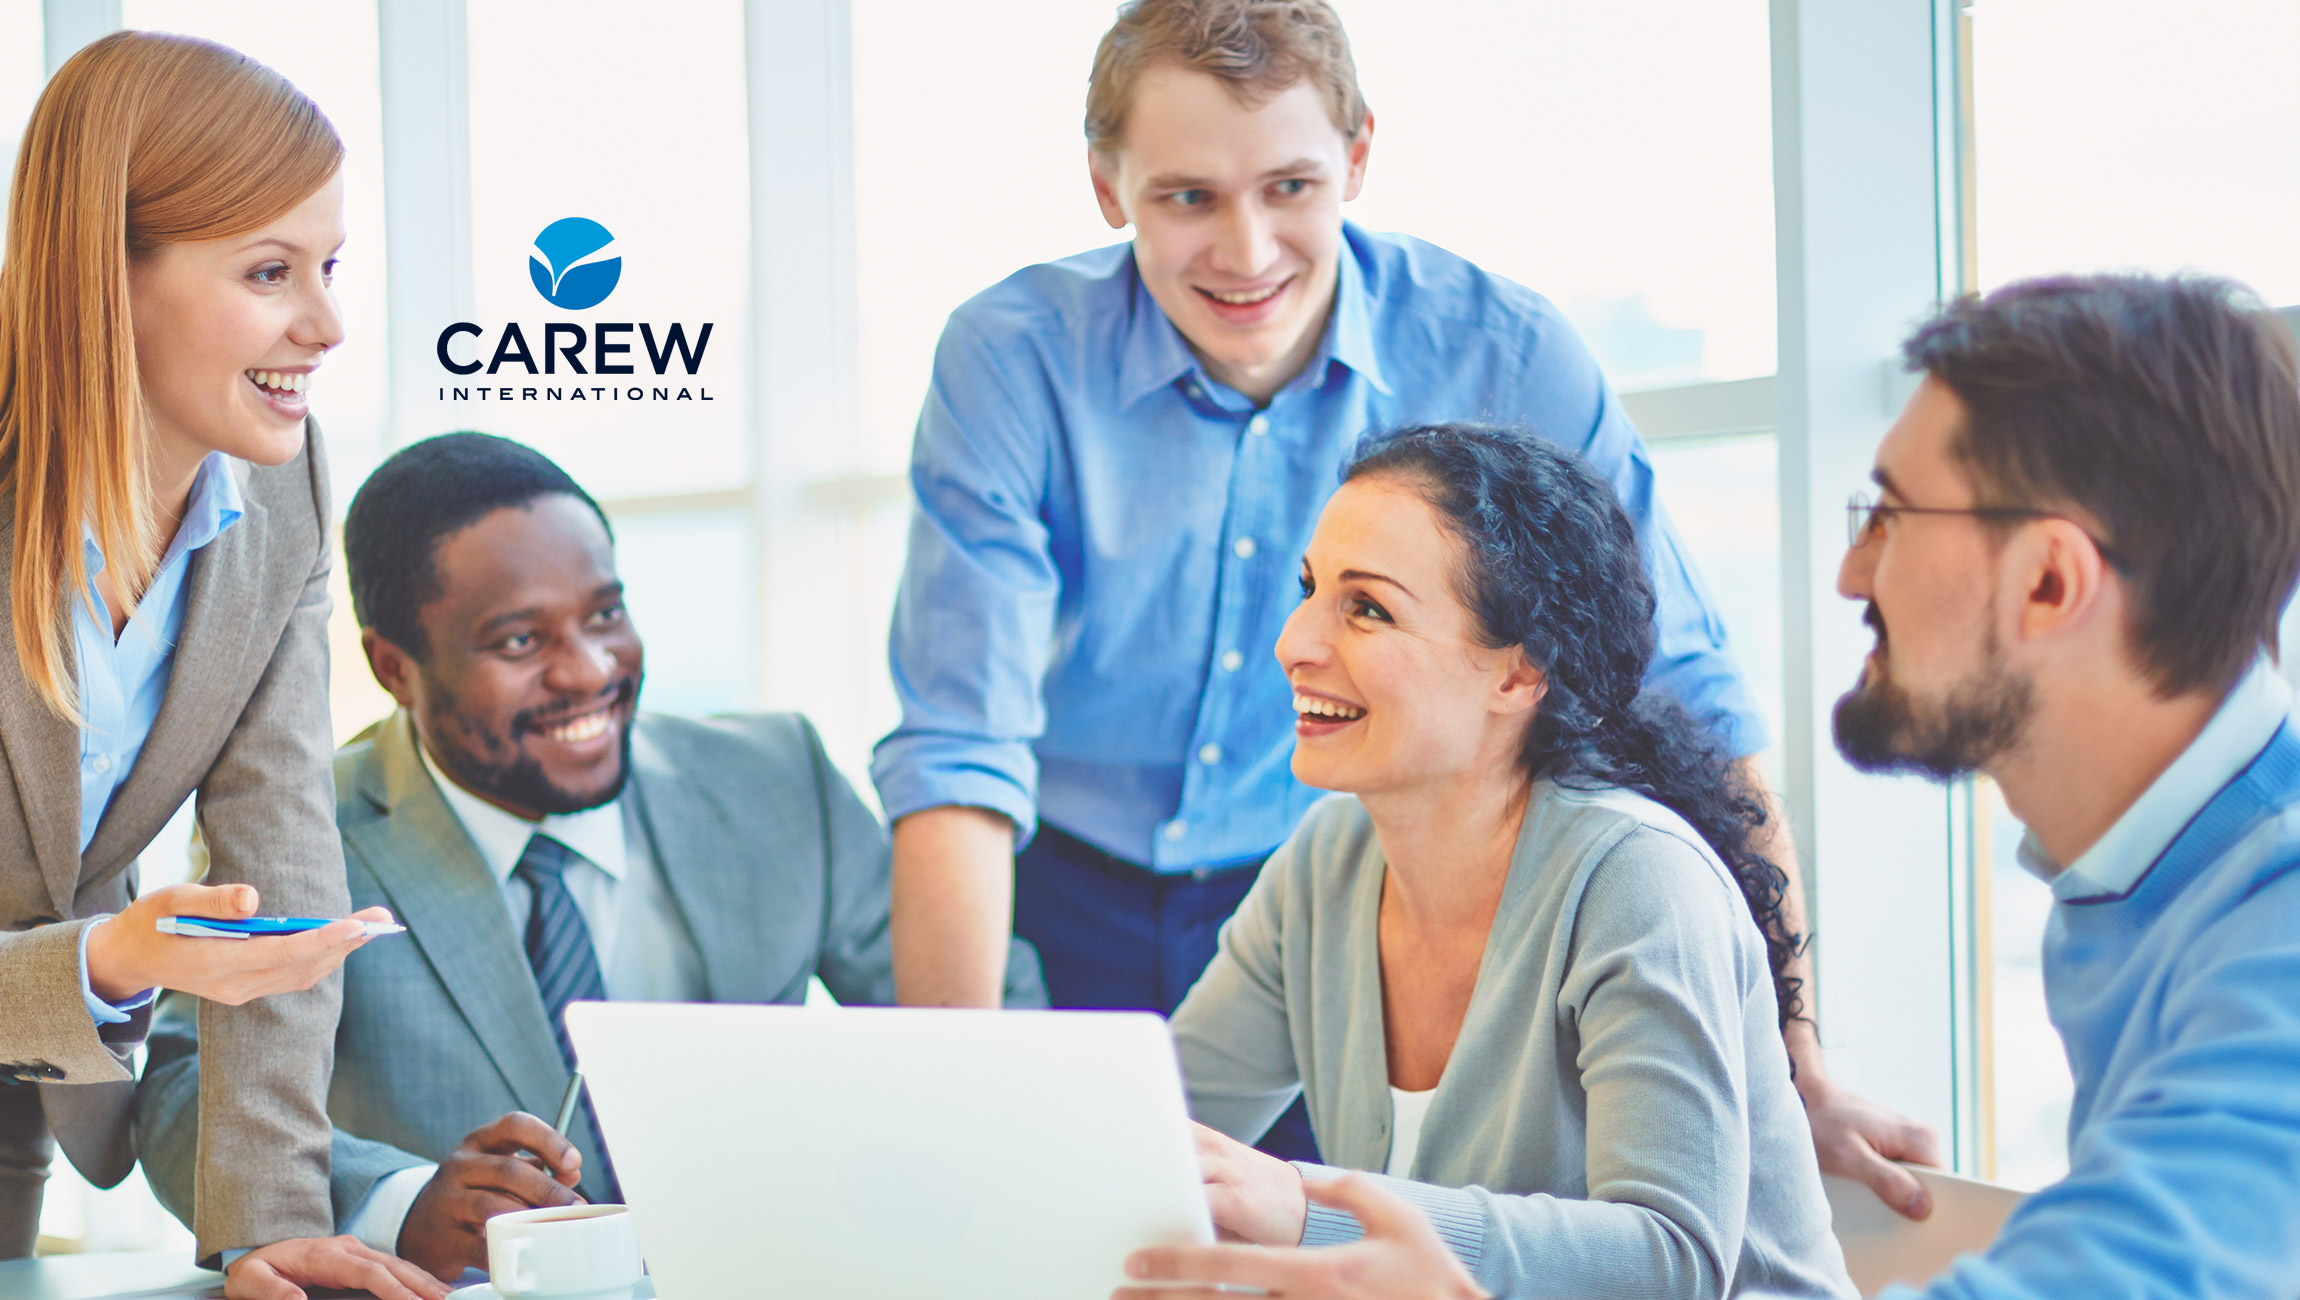 Carew International Announces 2019 Sales Training and Sales